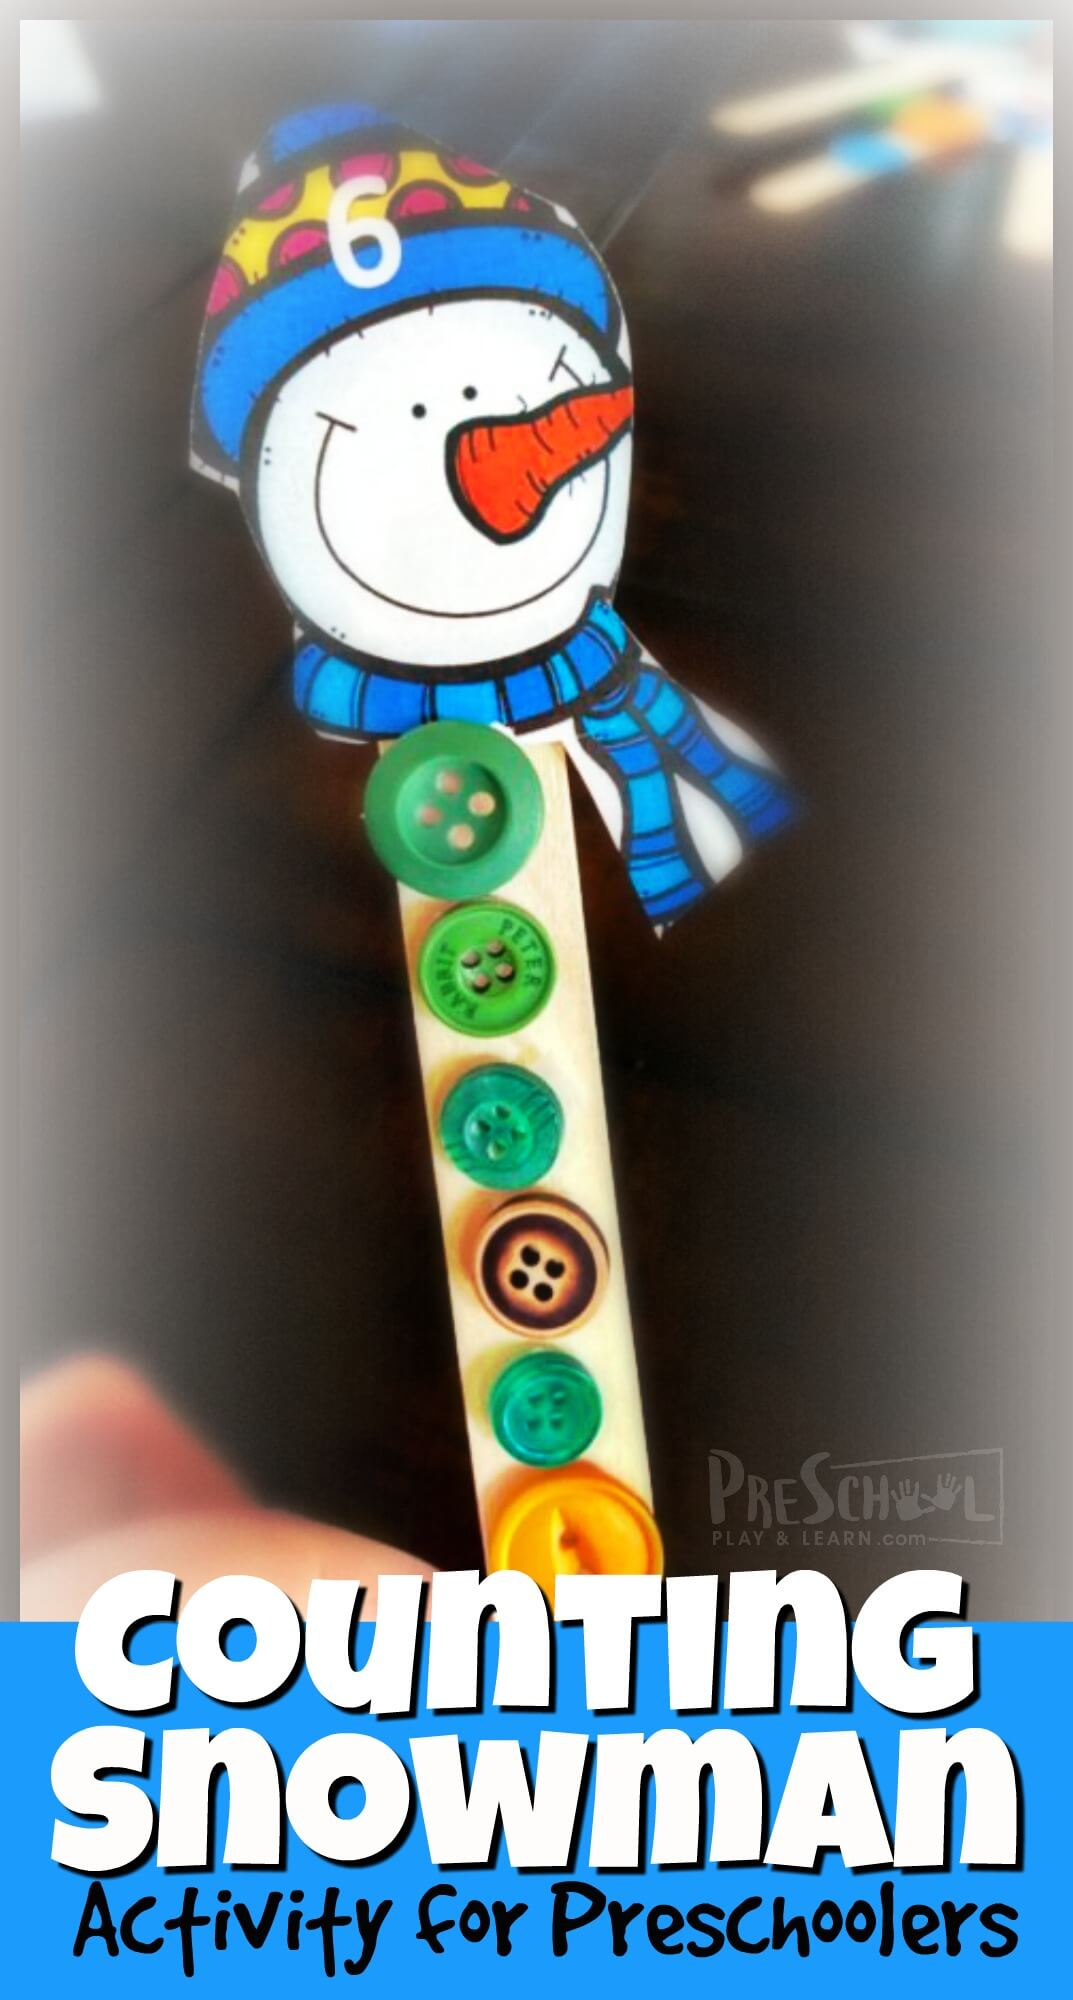 Kids will have fun practicing counting to 10 with these super cute counting snowman! This is both a hands-onsnowman math and a cute snowman craft for preschool at the same time. This winter craft combines tactile button counting with a printable snowman template to make into an adorable craft stick snowman craft.